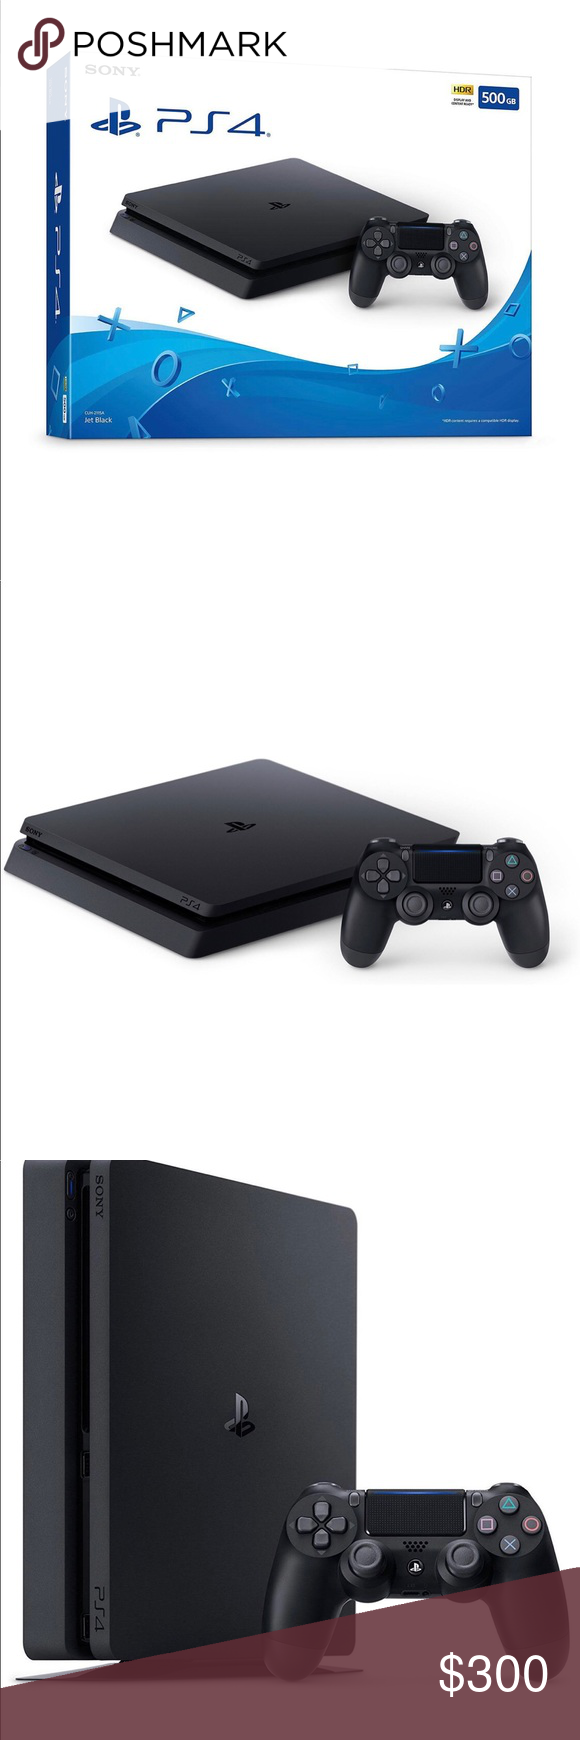 Ps4 1tb Brand New In Box Comes With All Cables And Controller Still In Box Other Ps4 1tb Brand New Ps4